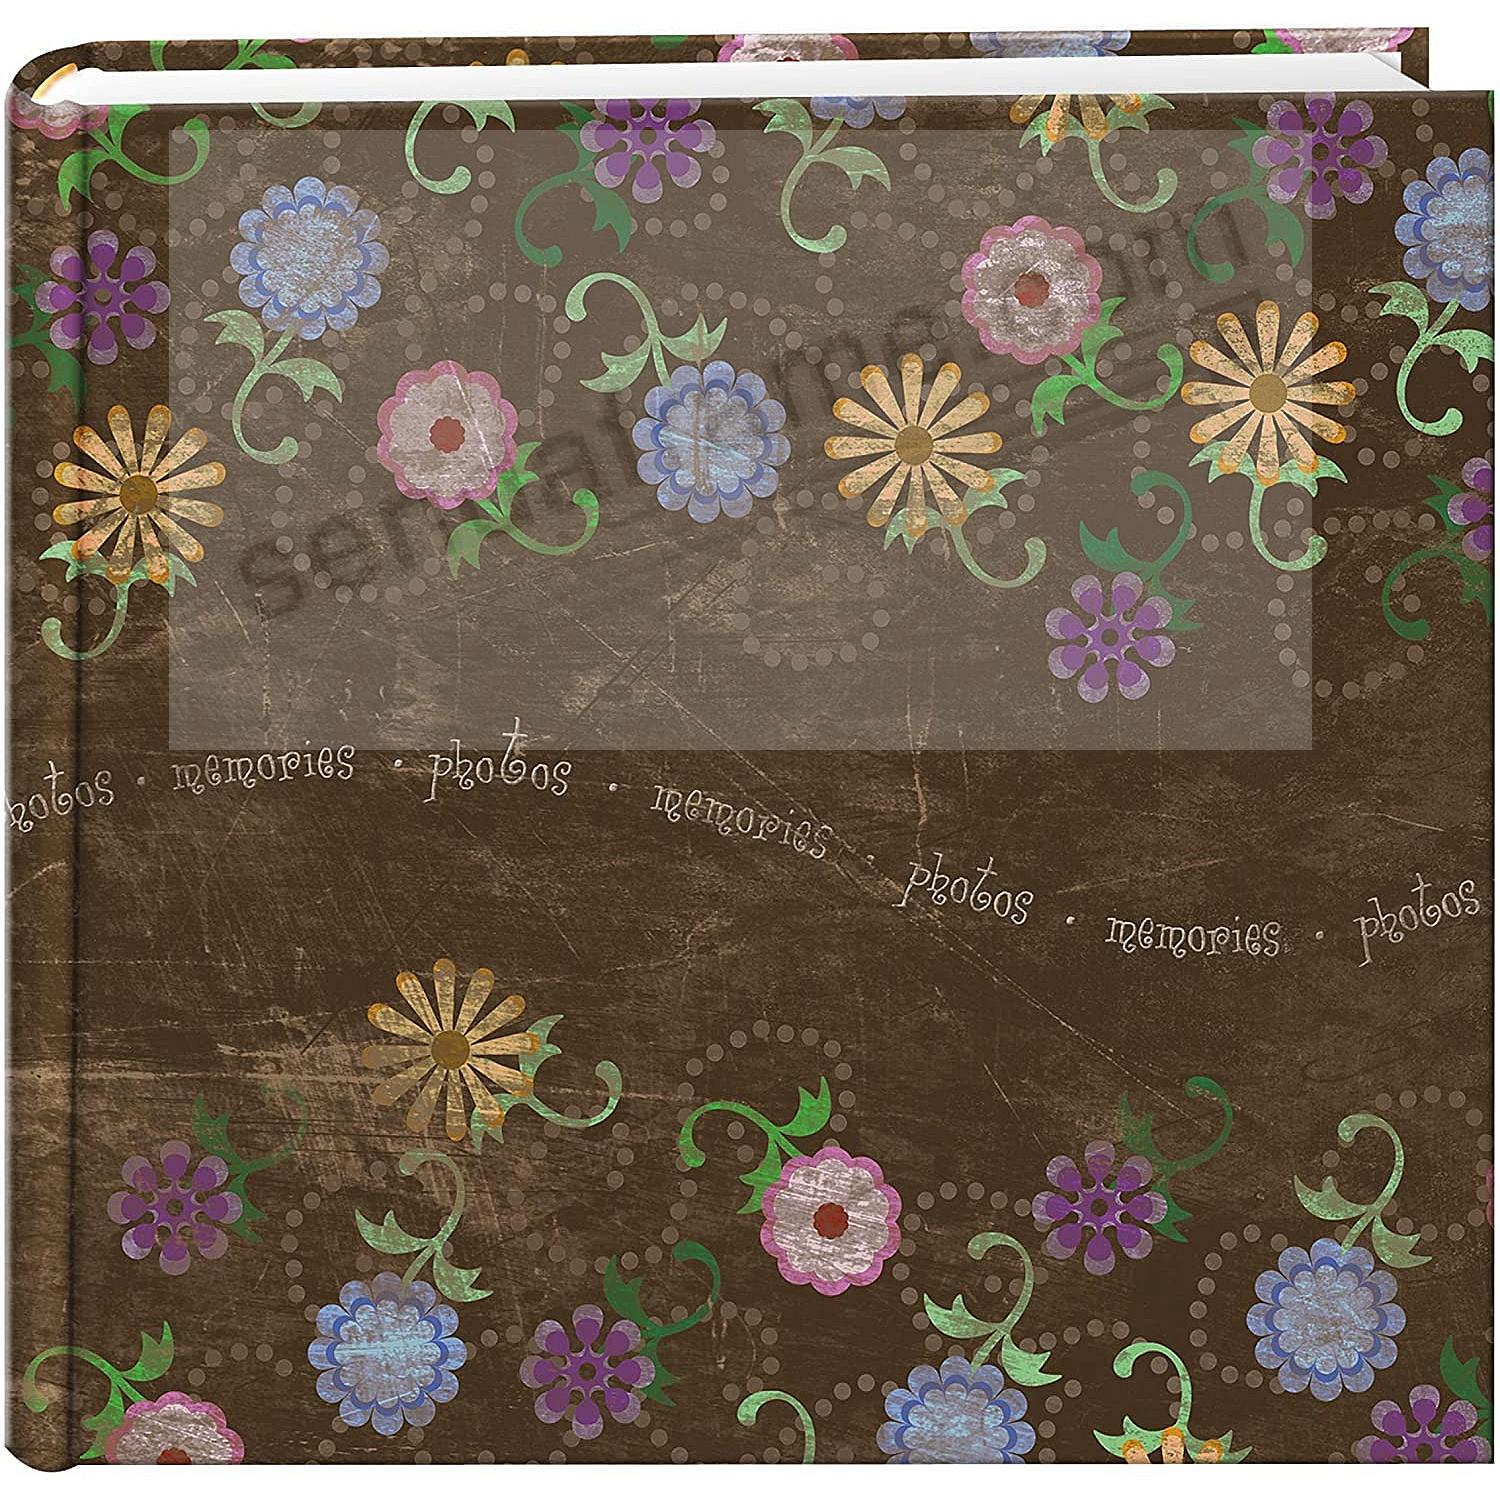 AGED FLORAL 2-up 4x6 bookbound album by Pioneer®